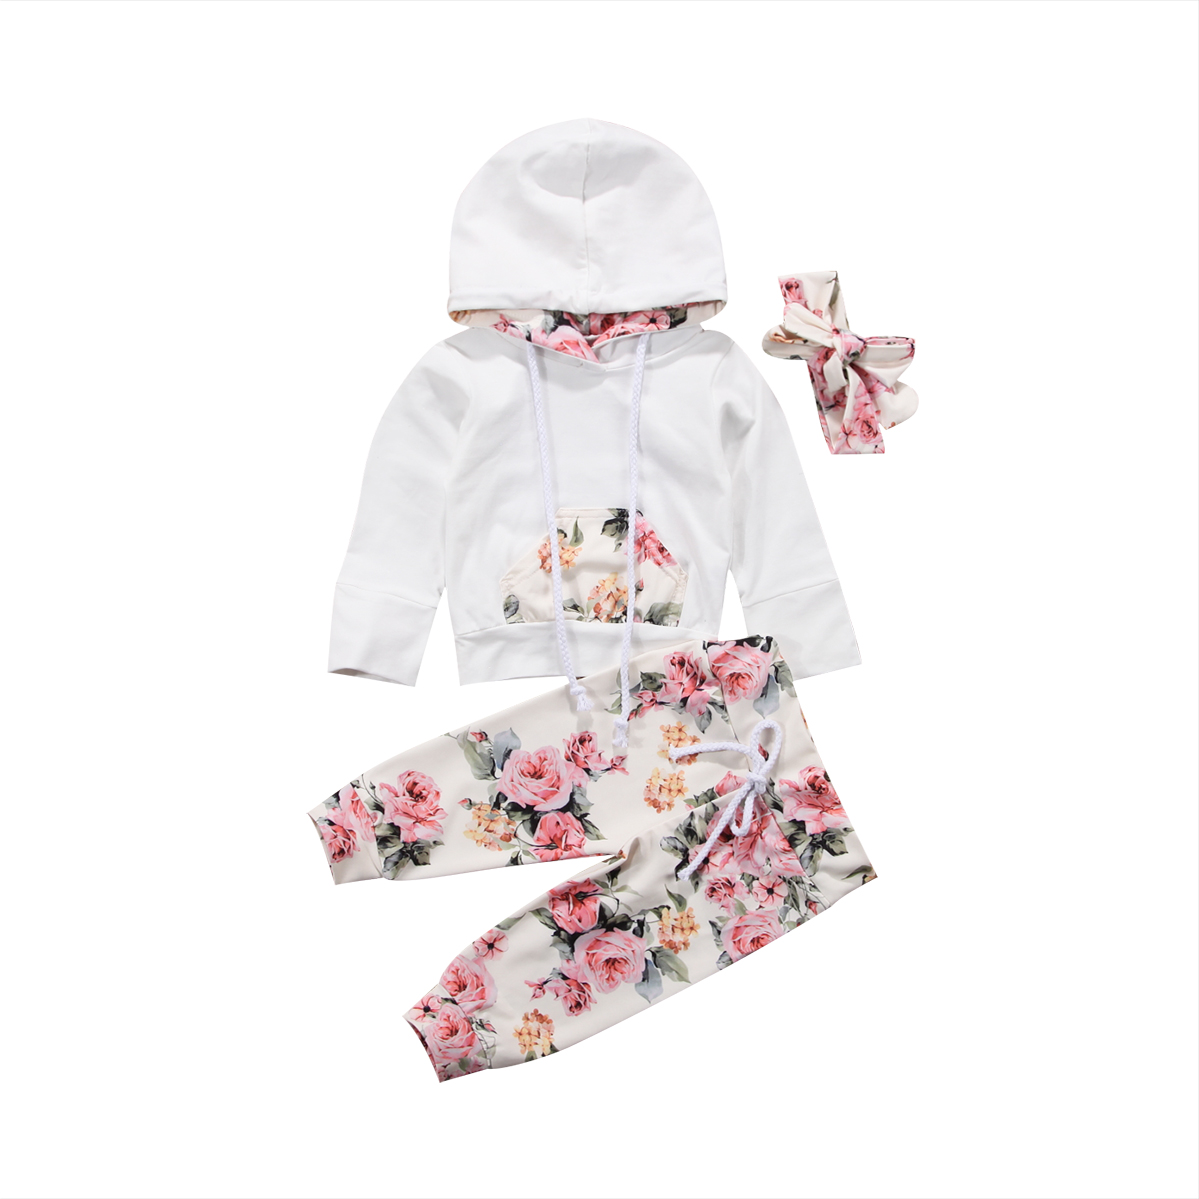 Newborn Baby Girl Clothes Sets Long Sleeve Hooded Tops Shirt Floral Long Pants Headband Outfits Clothes Set 0-24Months